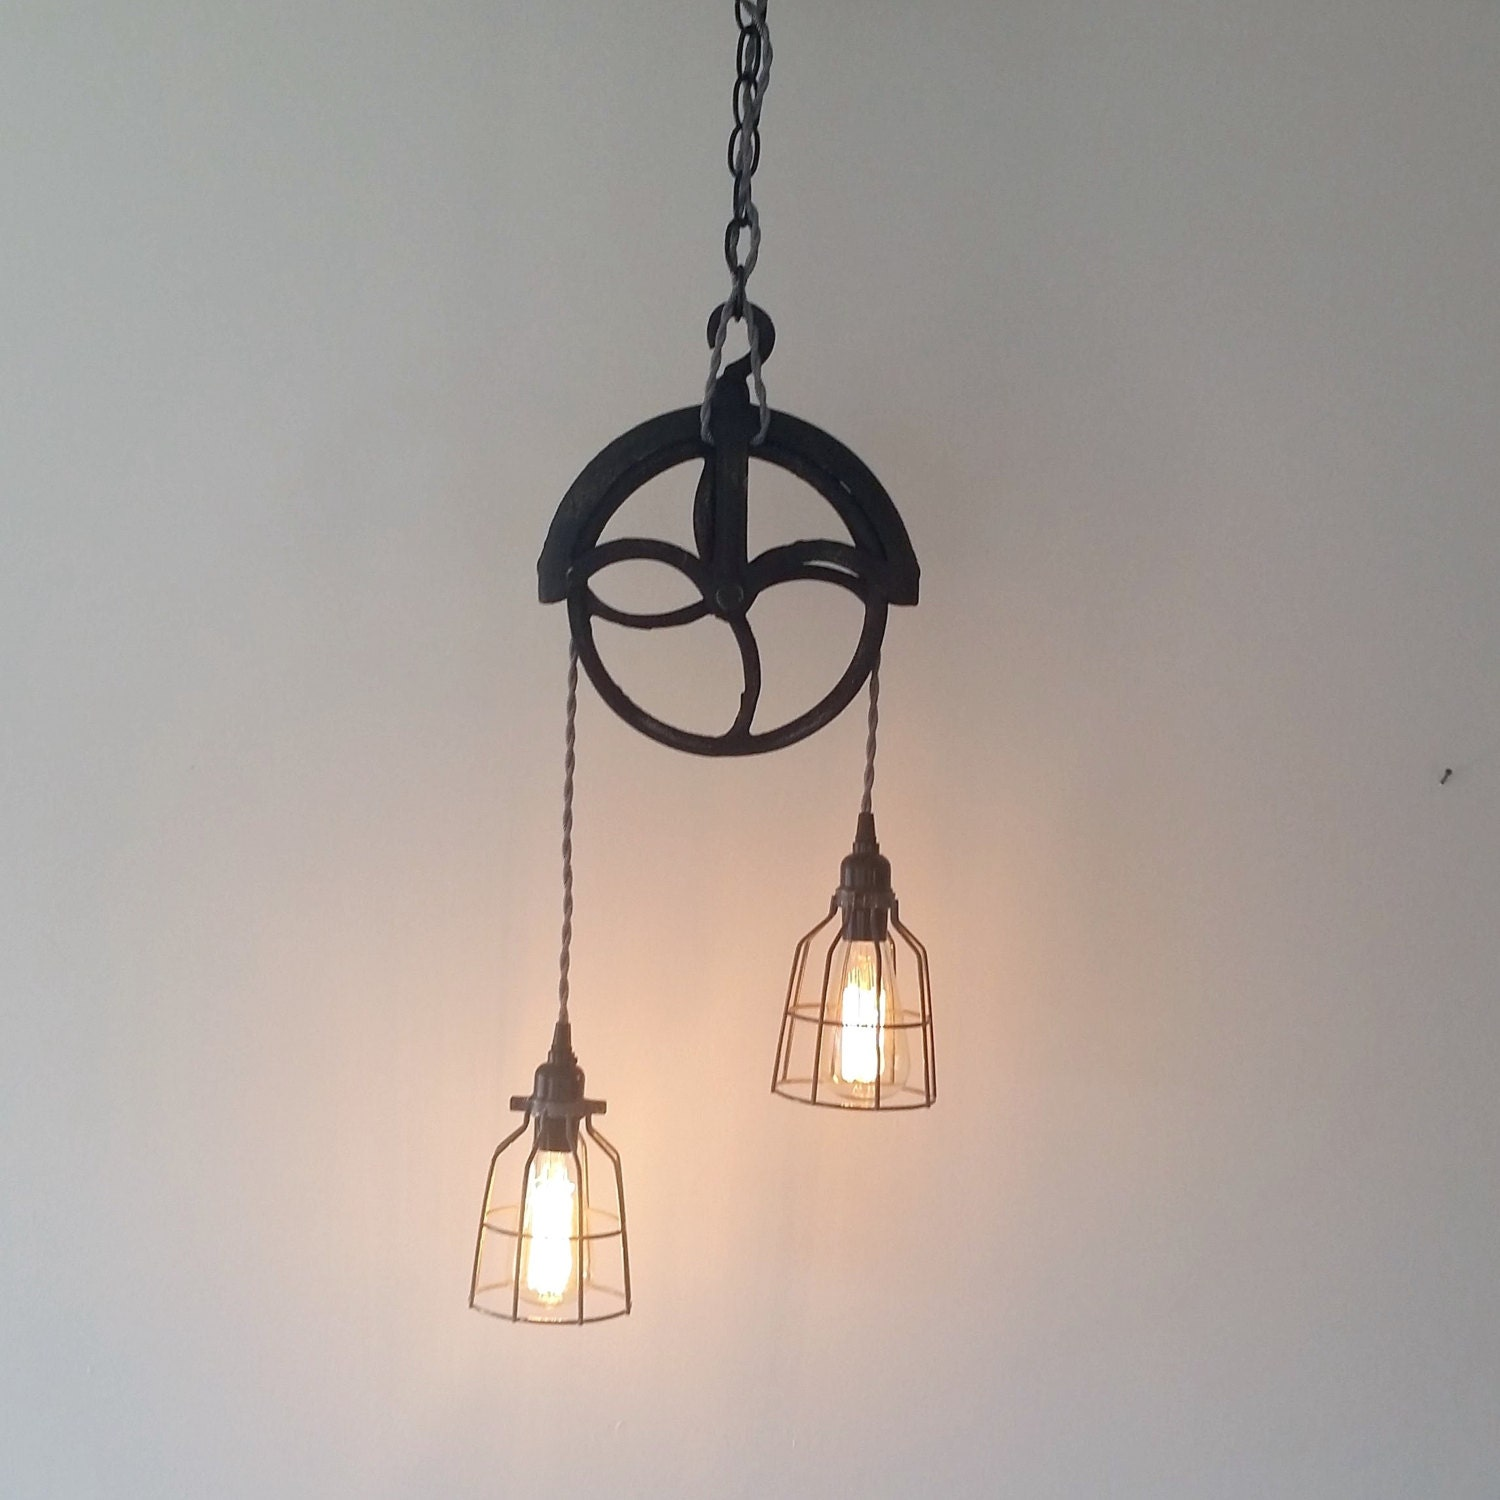 Unique Pendant Lights